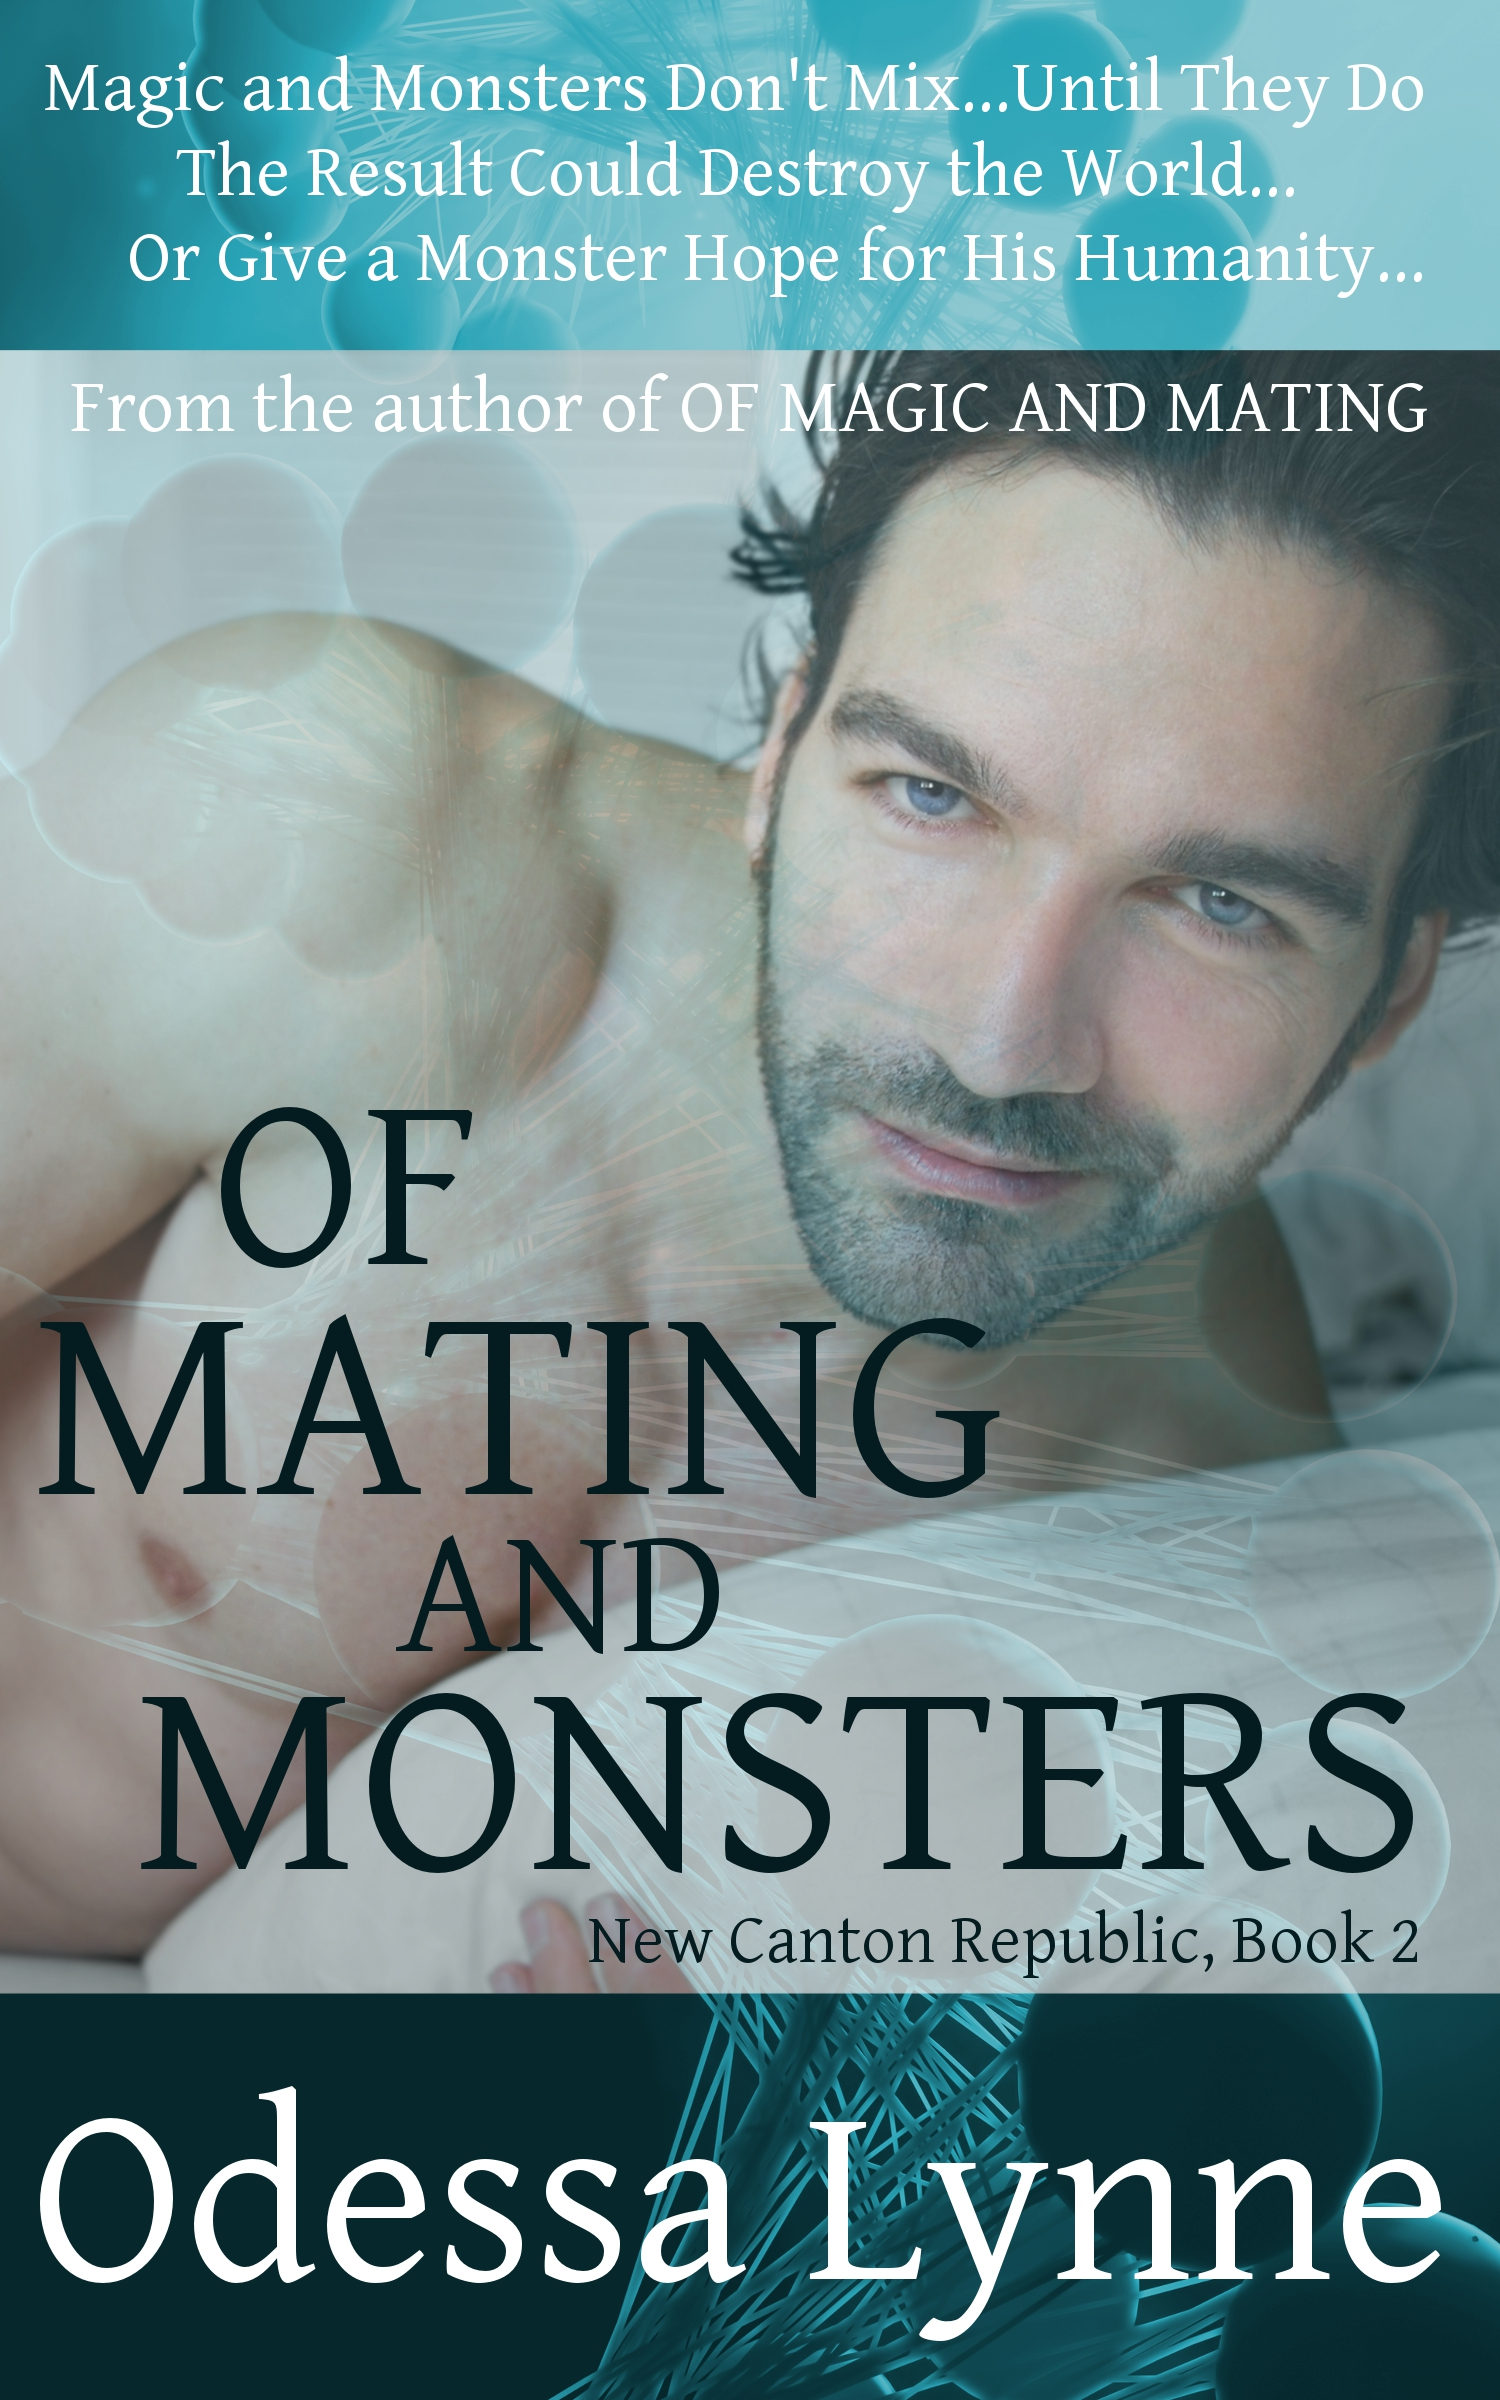 Of Mating and Monsters